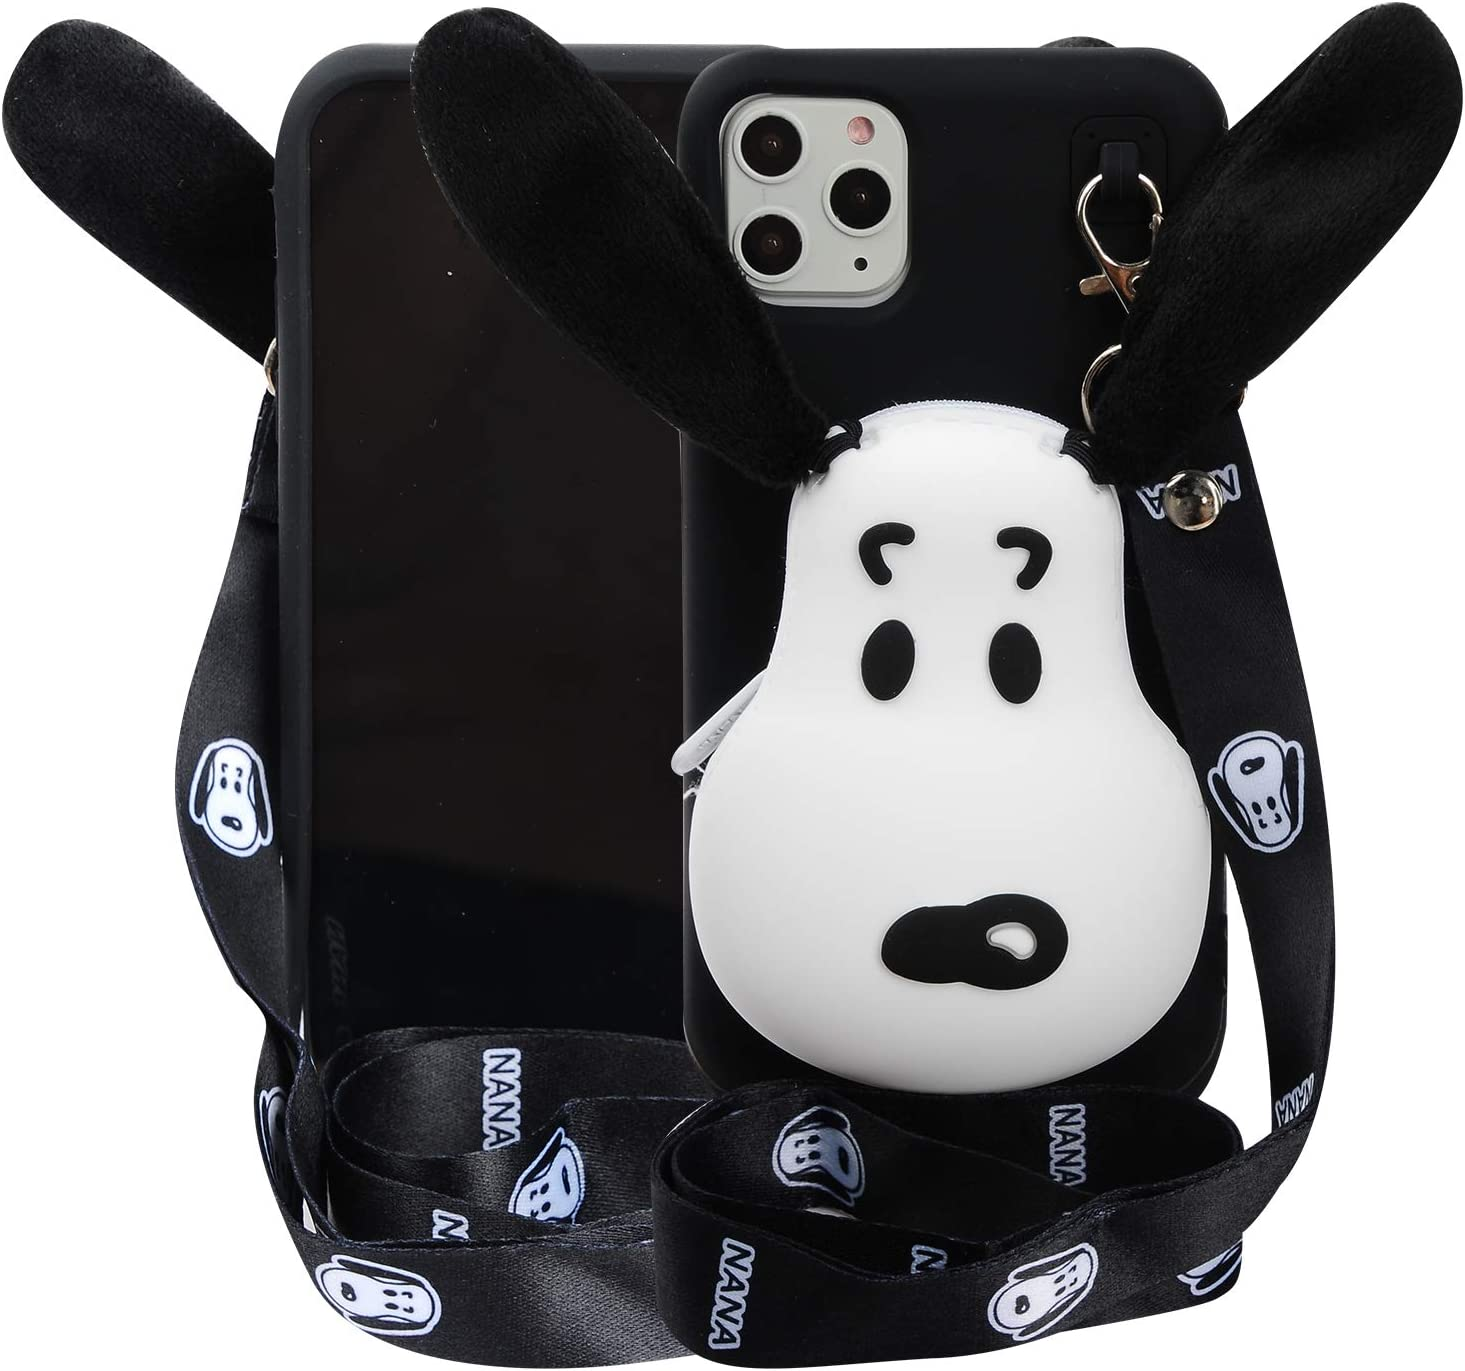 "Cartoon Case for iPhone 11 Pro 5.8"",Phenix-Color 3D Cute Soft Silicone Animated Protective Back Cover with Earphone Pocket and Necklace for iPhone 11 6.1"" (Snoopy, iPhone 11 Pro 5.8"")"